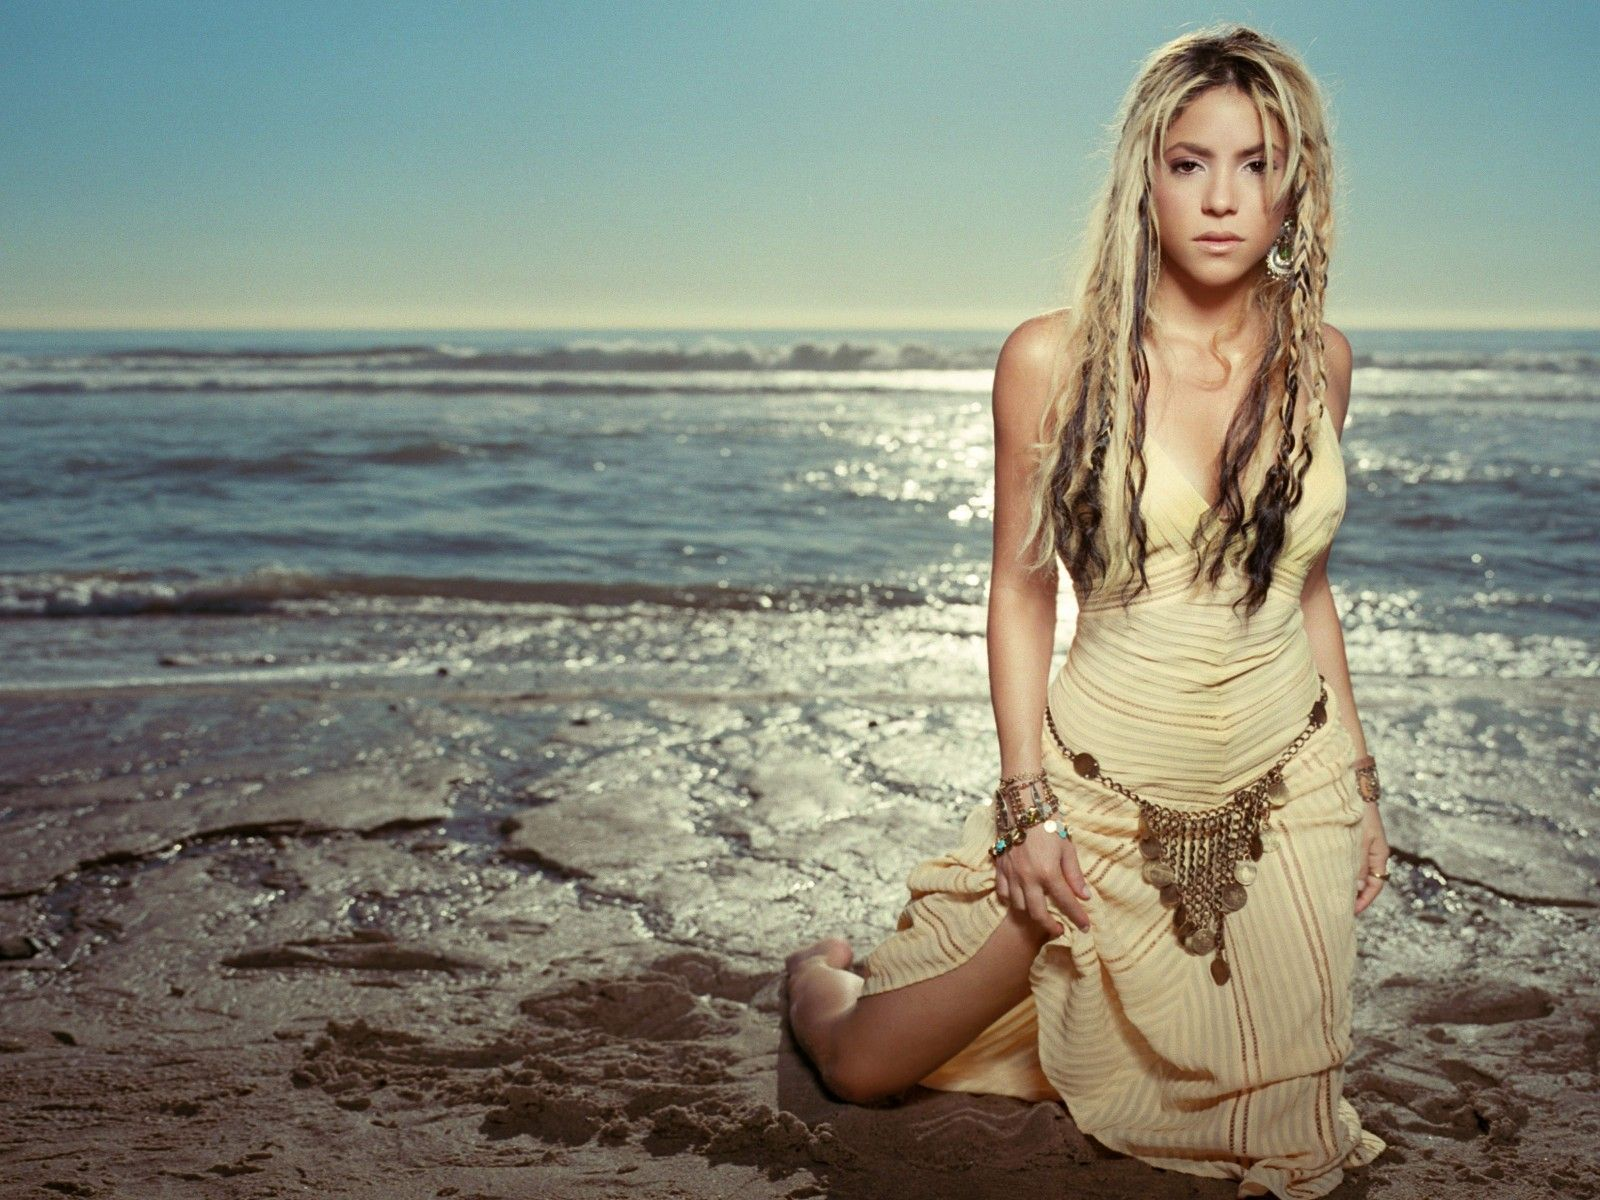 shakira wallpaper beach